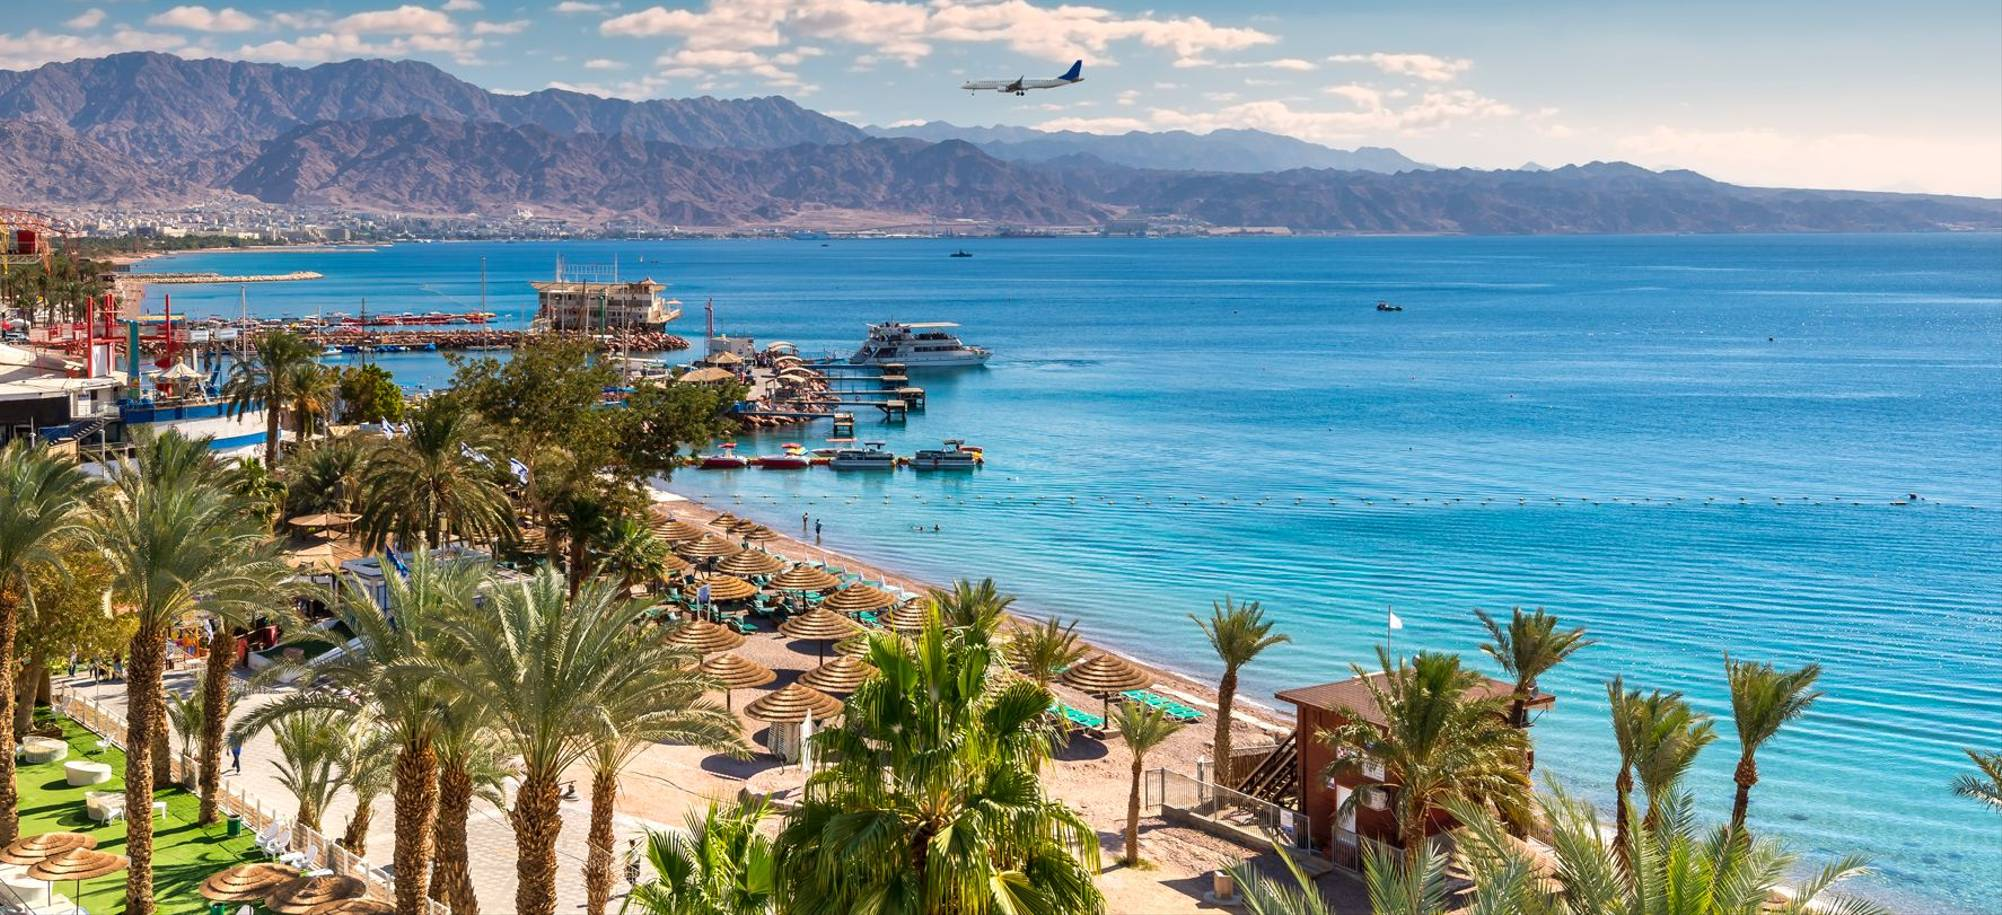 Aqaba   Central Public Beach And Marina In Eilat   Itinerary Desktop